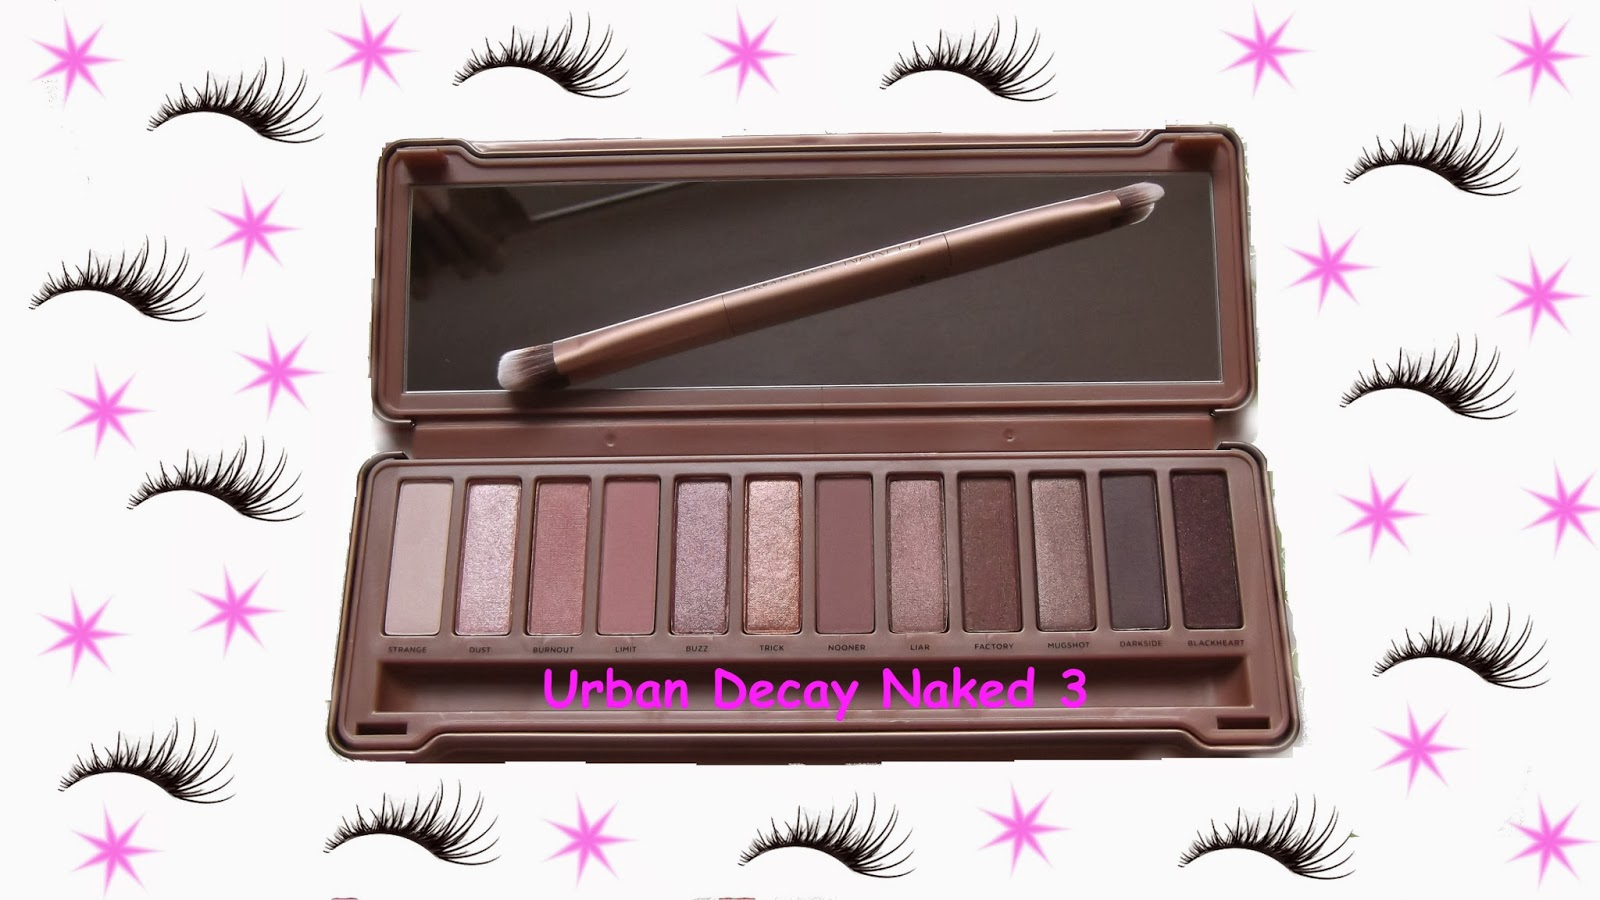 Urban Decay Naked 3 Palette reviews in Eye Shadow